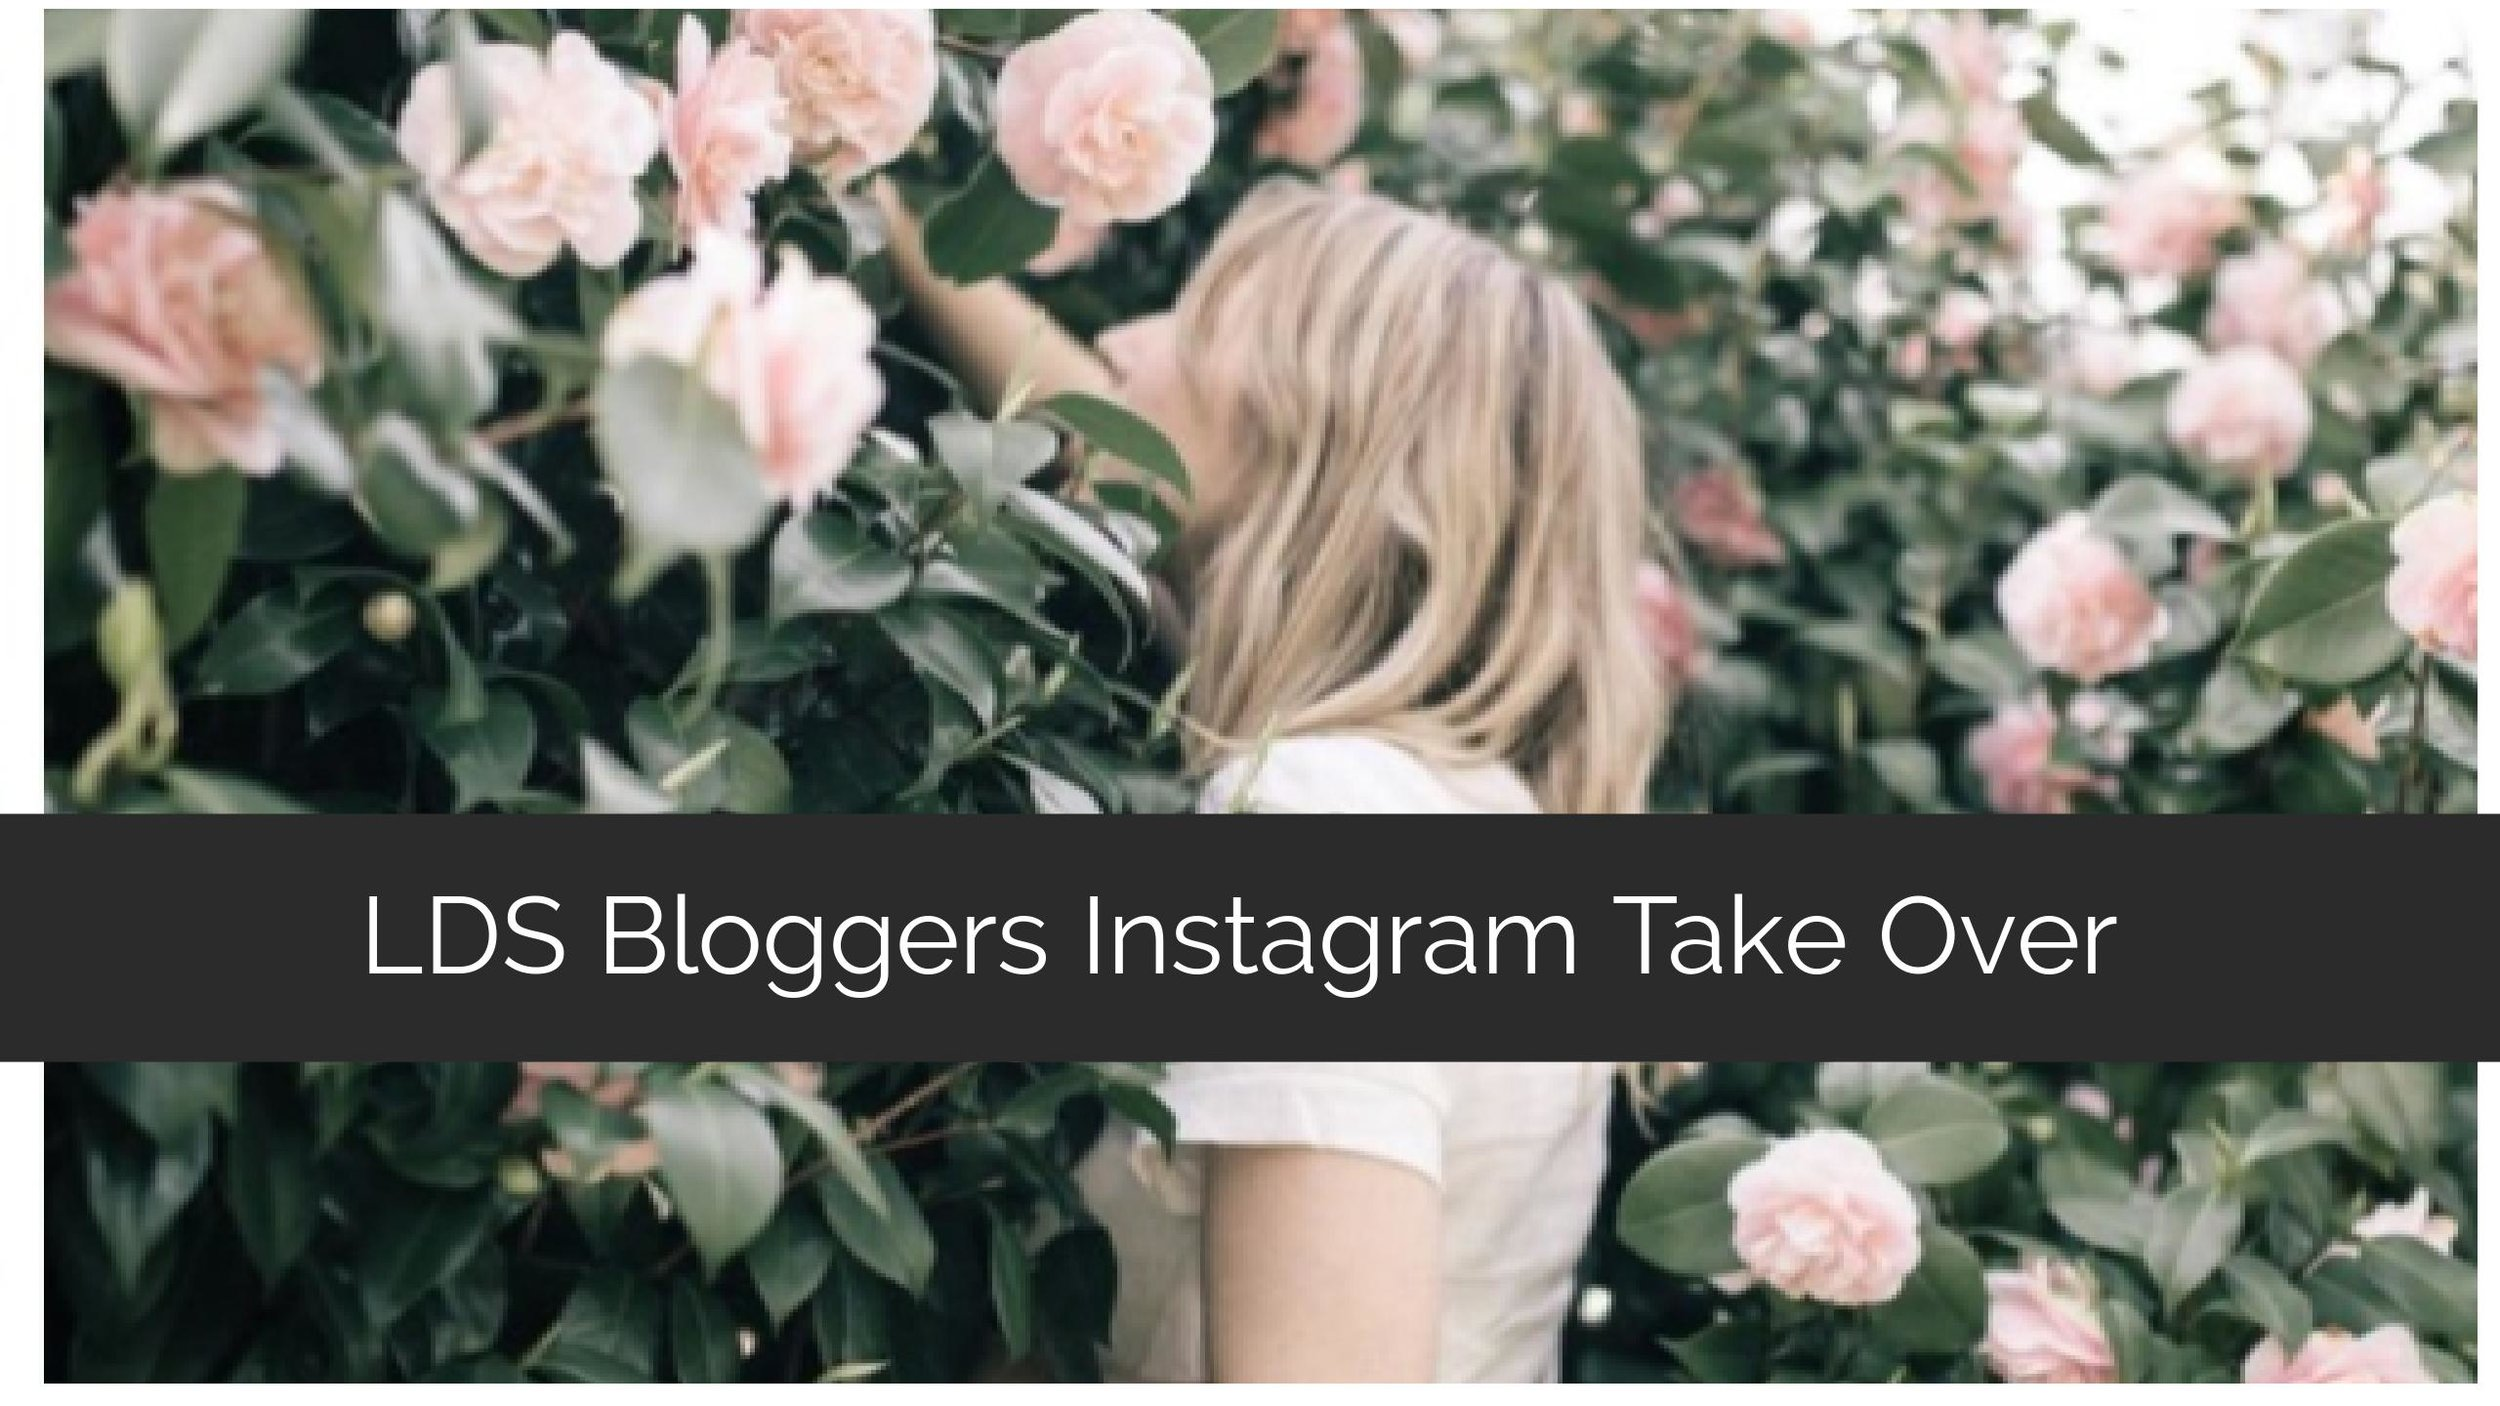 LDS Bloggers Instagram Take Overs